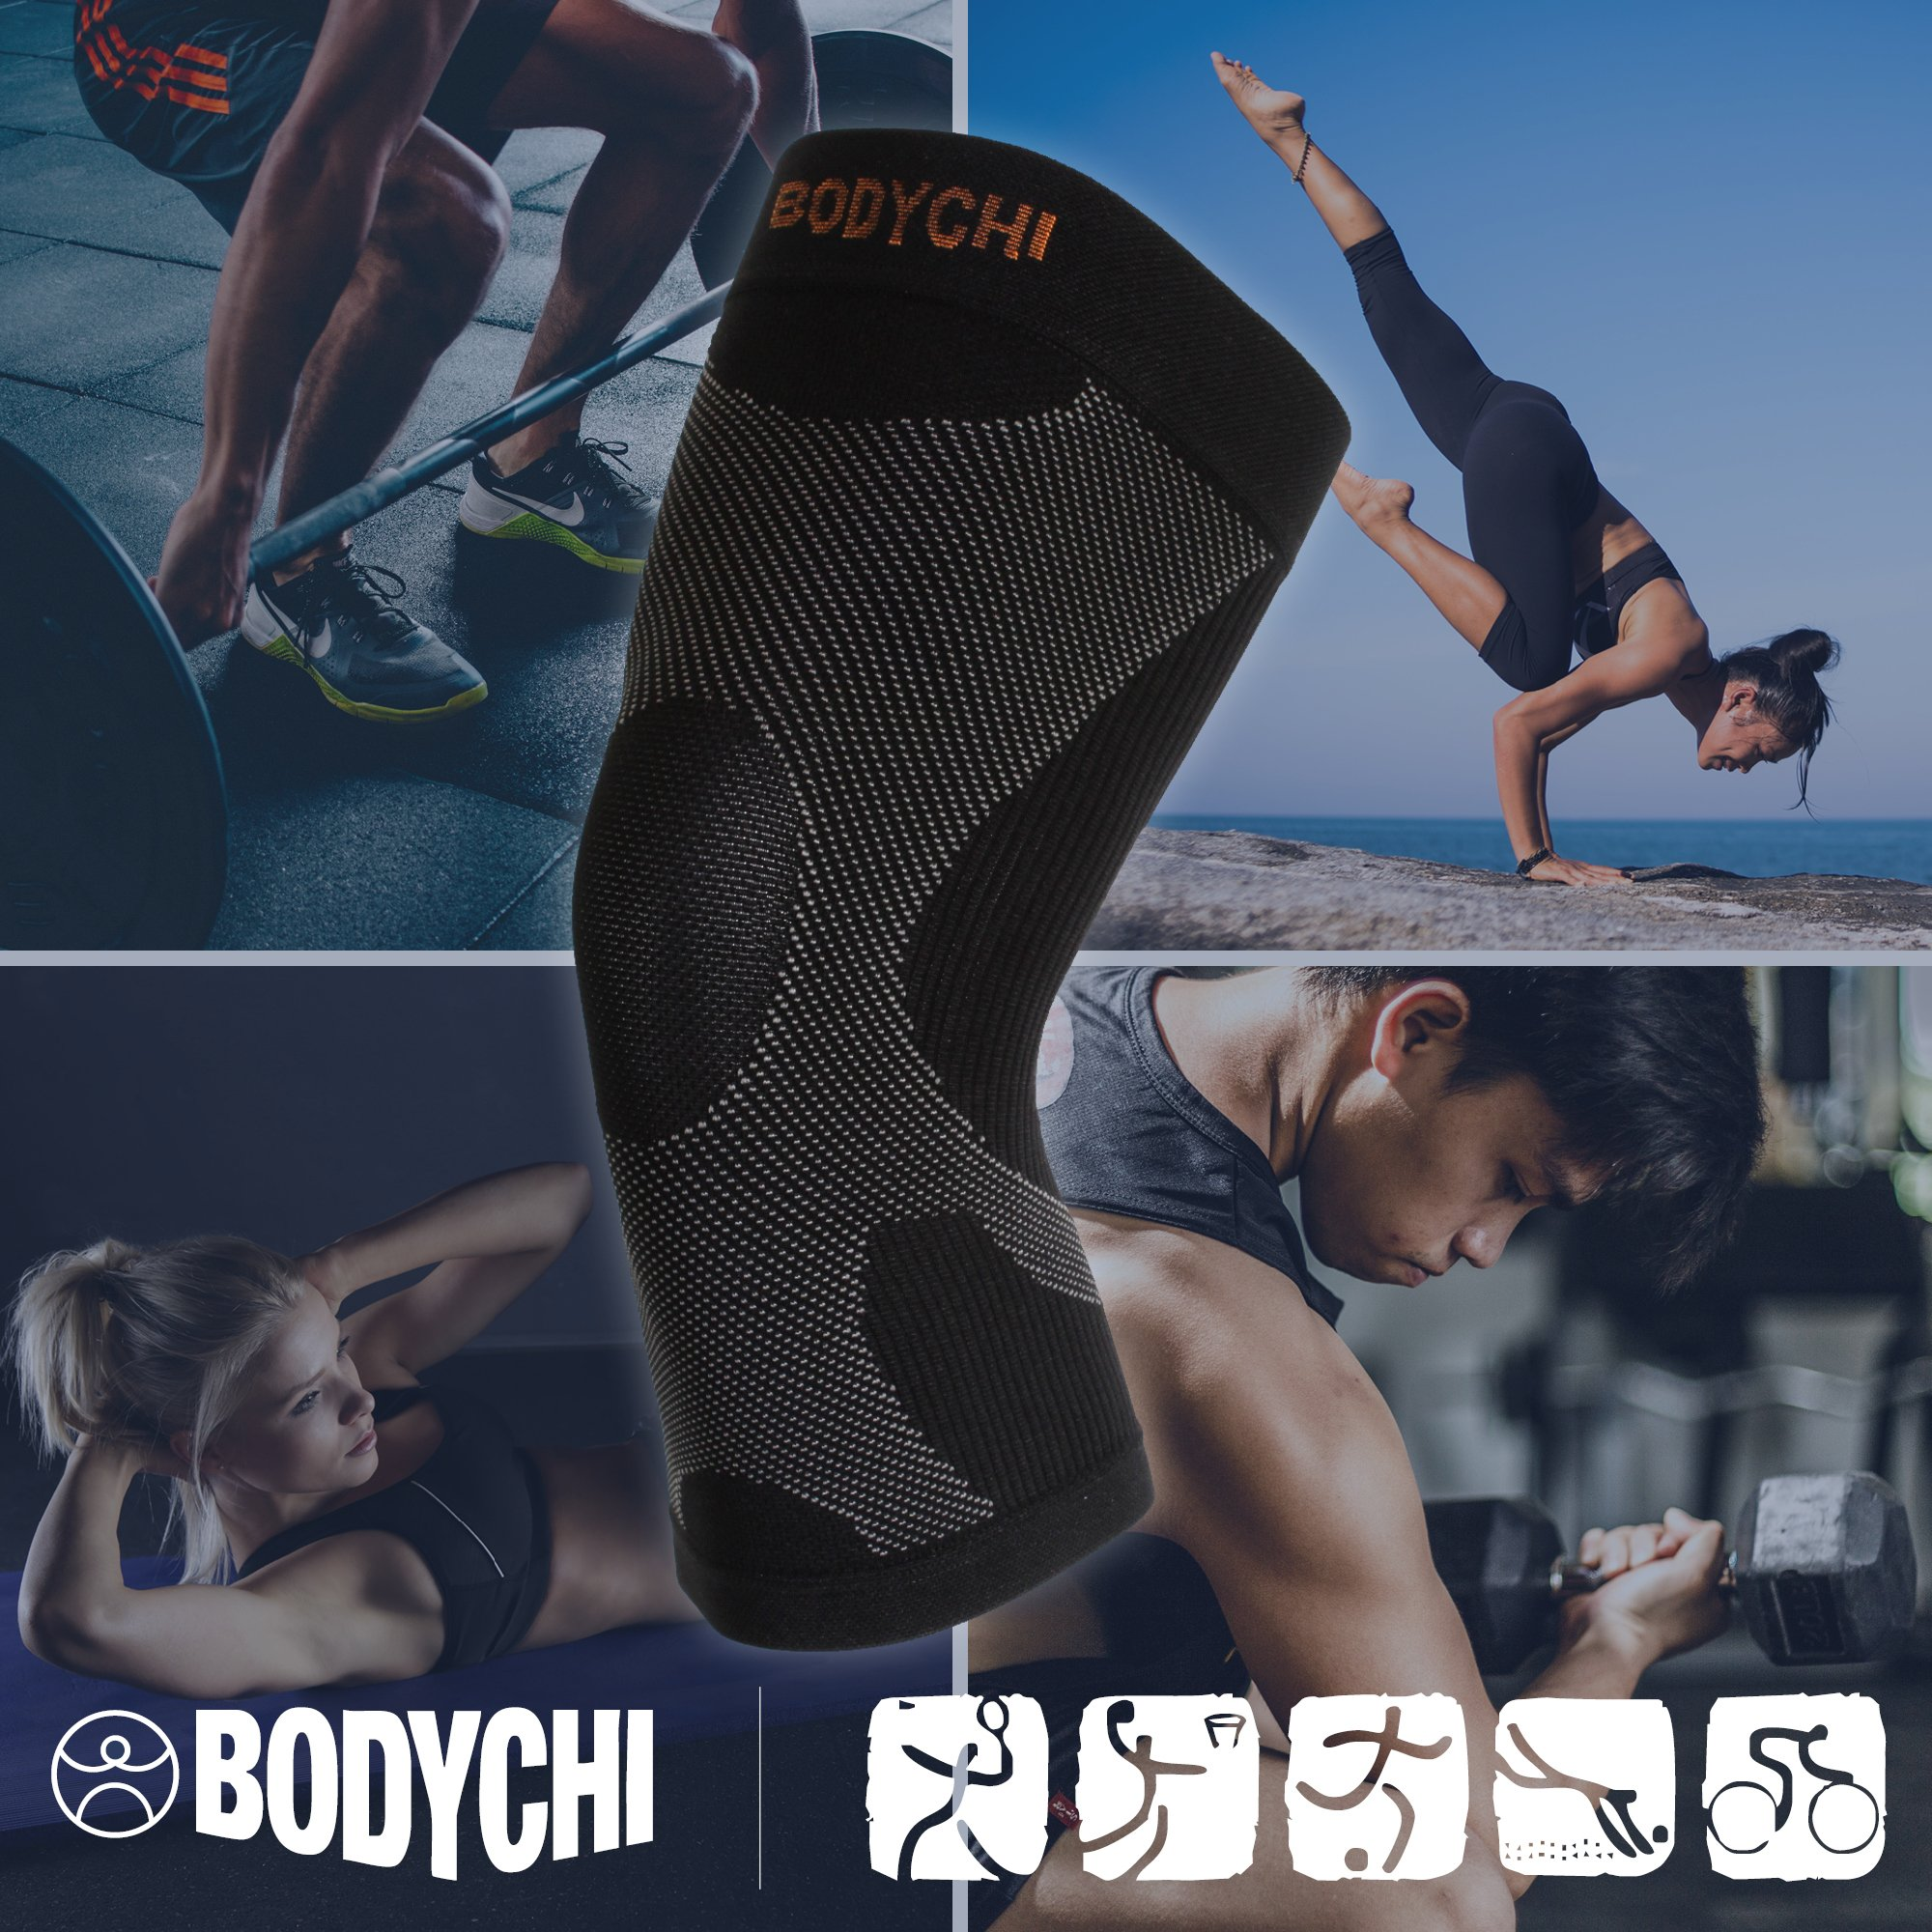 BODYCHI Men and Women Seamless 20-30 mmHg Compression Knee Support Sleeve for Joint Protection and Support for Running, Sports, Knee Pain Relief, Knee Sleeve, Comes in a Pair, Large by BODYCHI (Image #4)